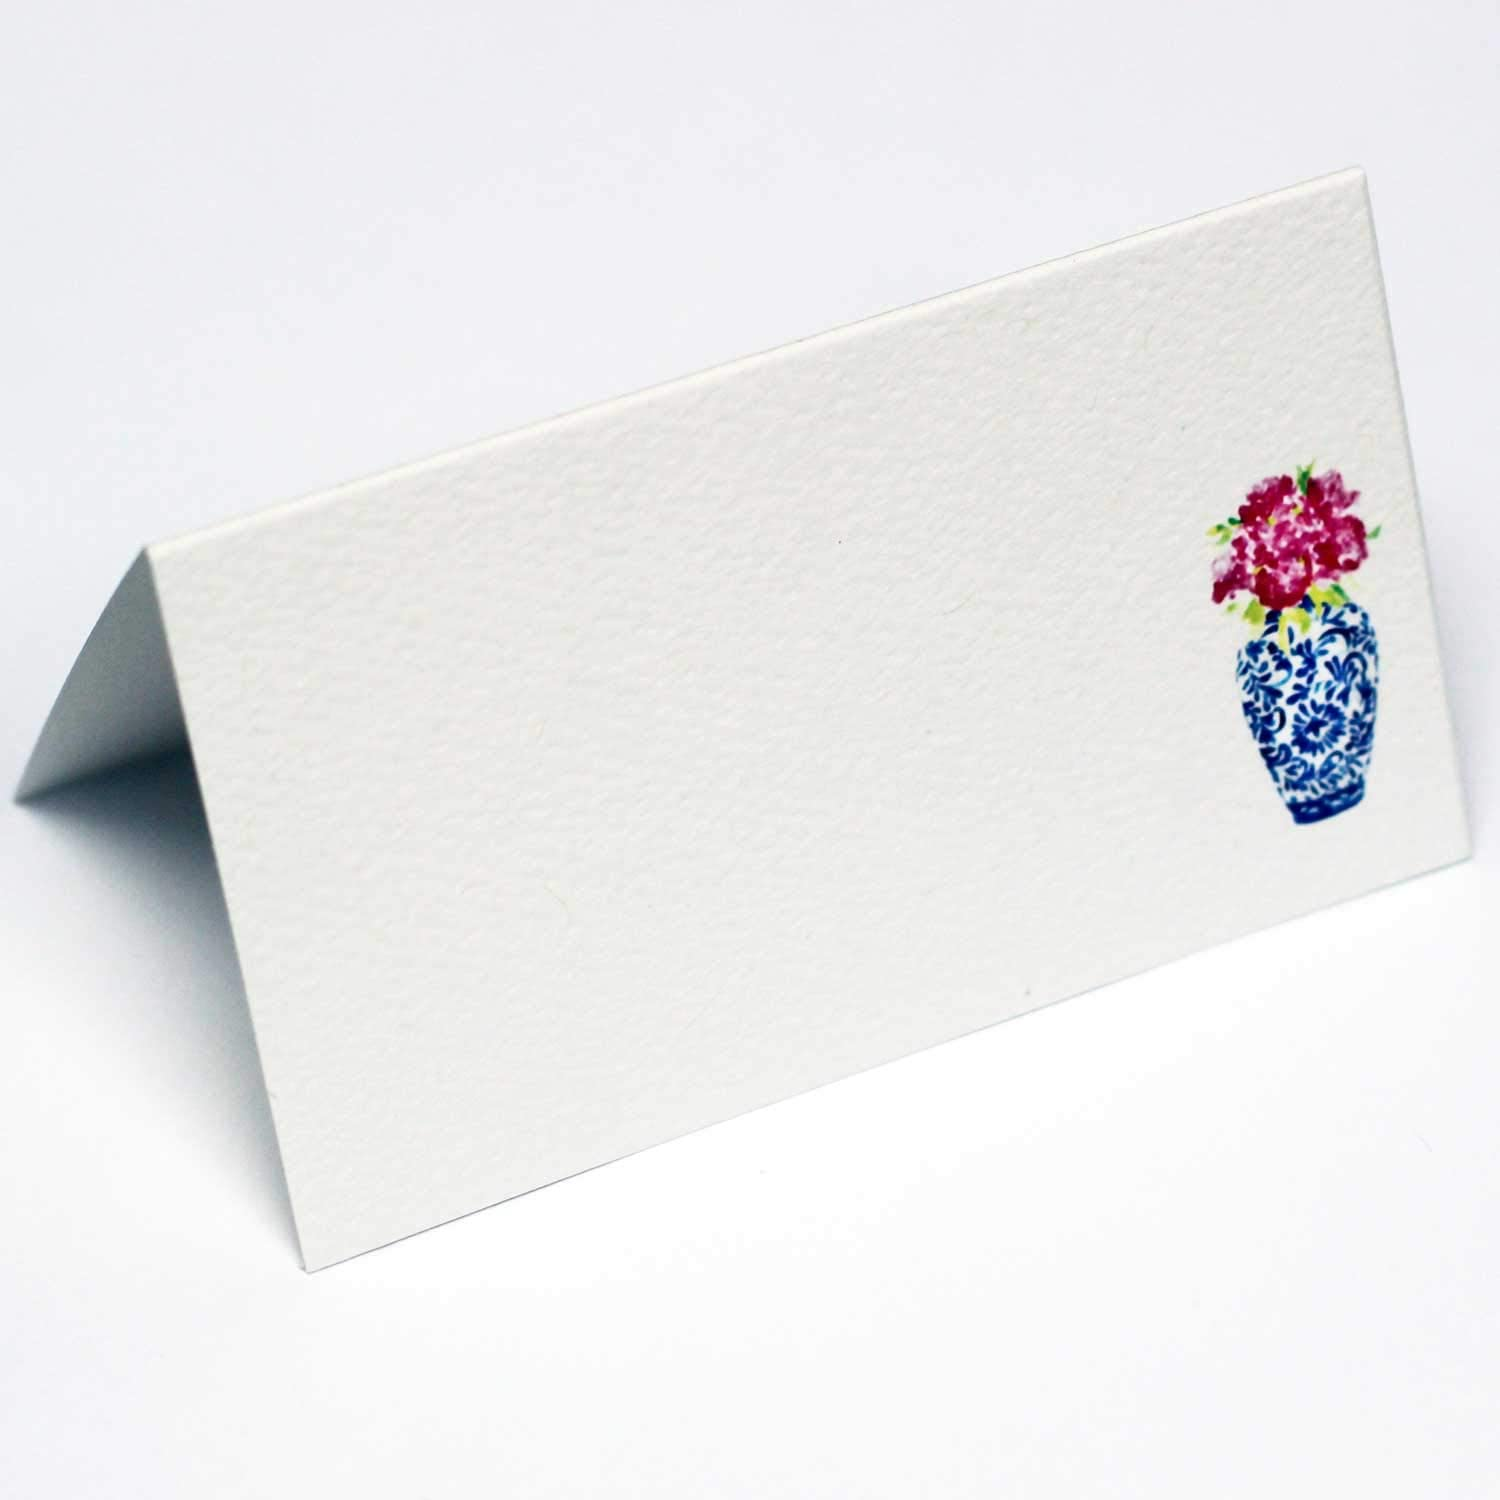 Nancy Nikko Place Cards with Blue and White Ginger Jar with Pink Flowers for Weddings, Showers, and Dinner Parties. Table Tent Style, Scored for Easy Folding. Available in Pkgs of 12/25 / 50 (12)